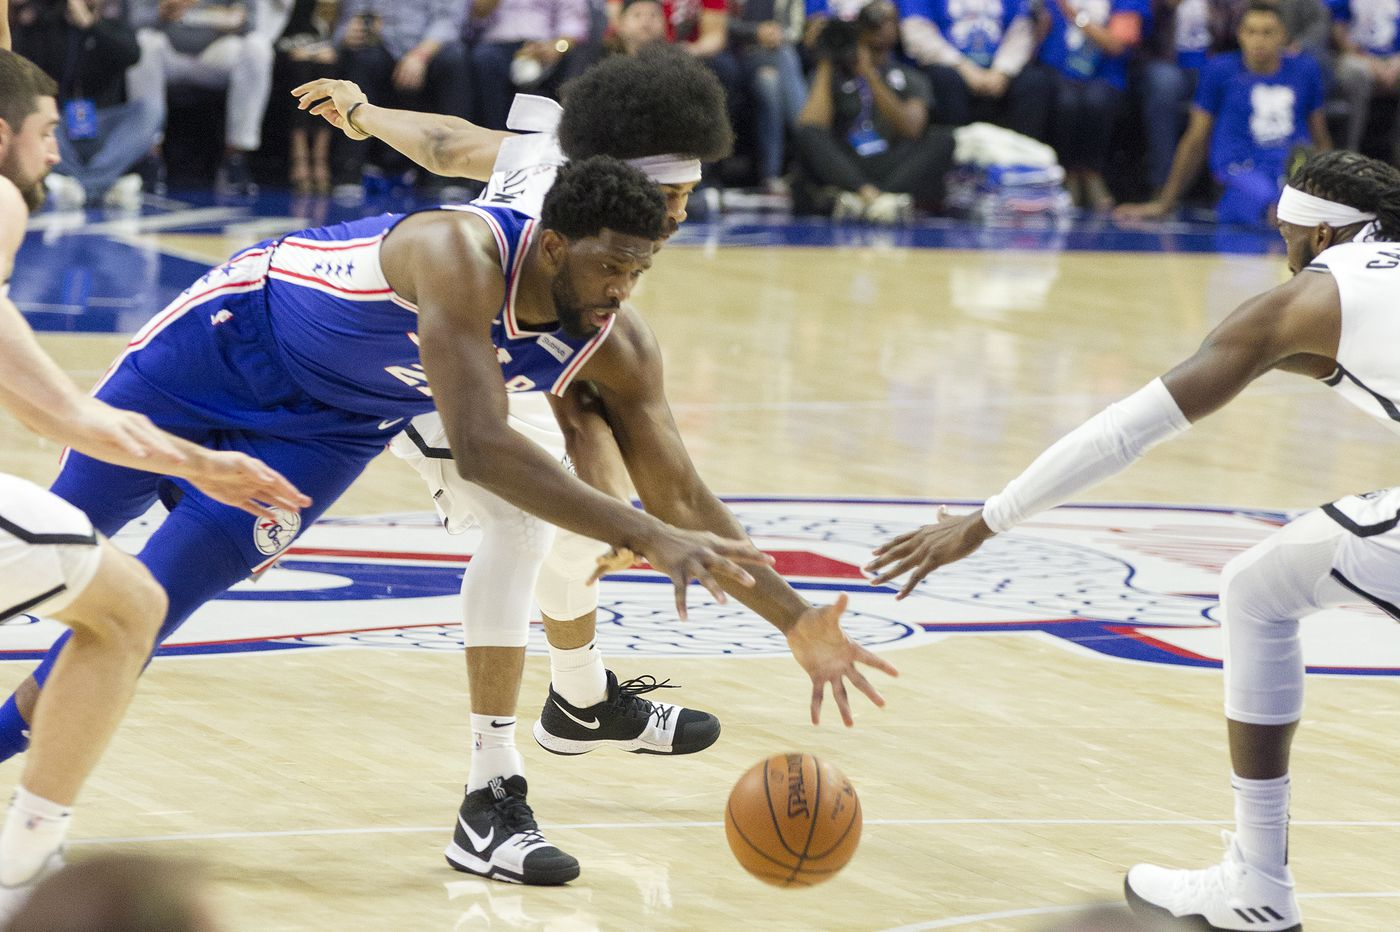 Nets vs Sixers: A look at Games 1 and 2